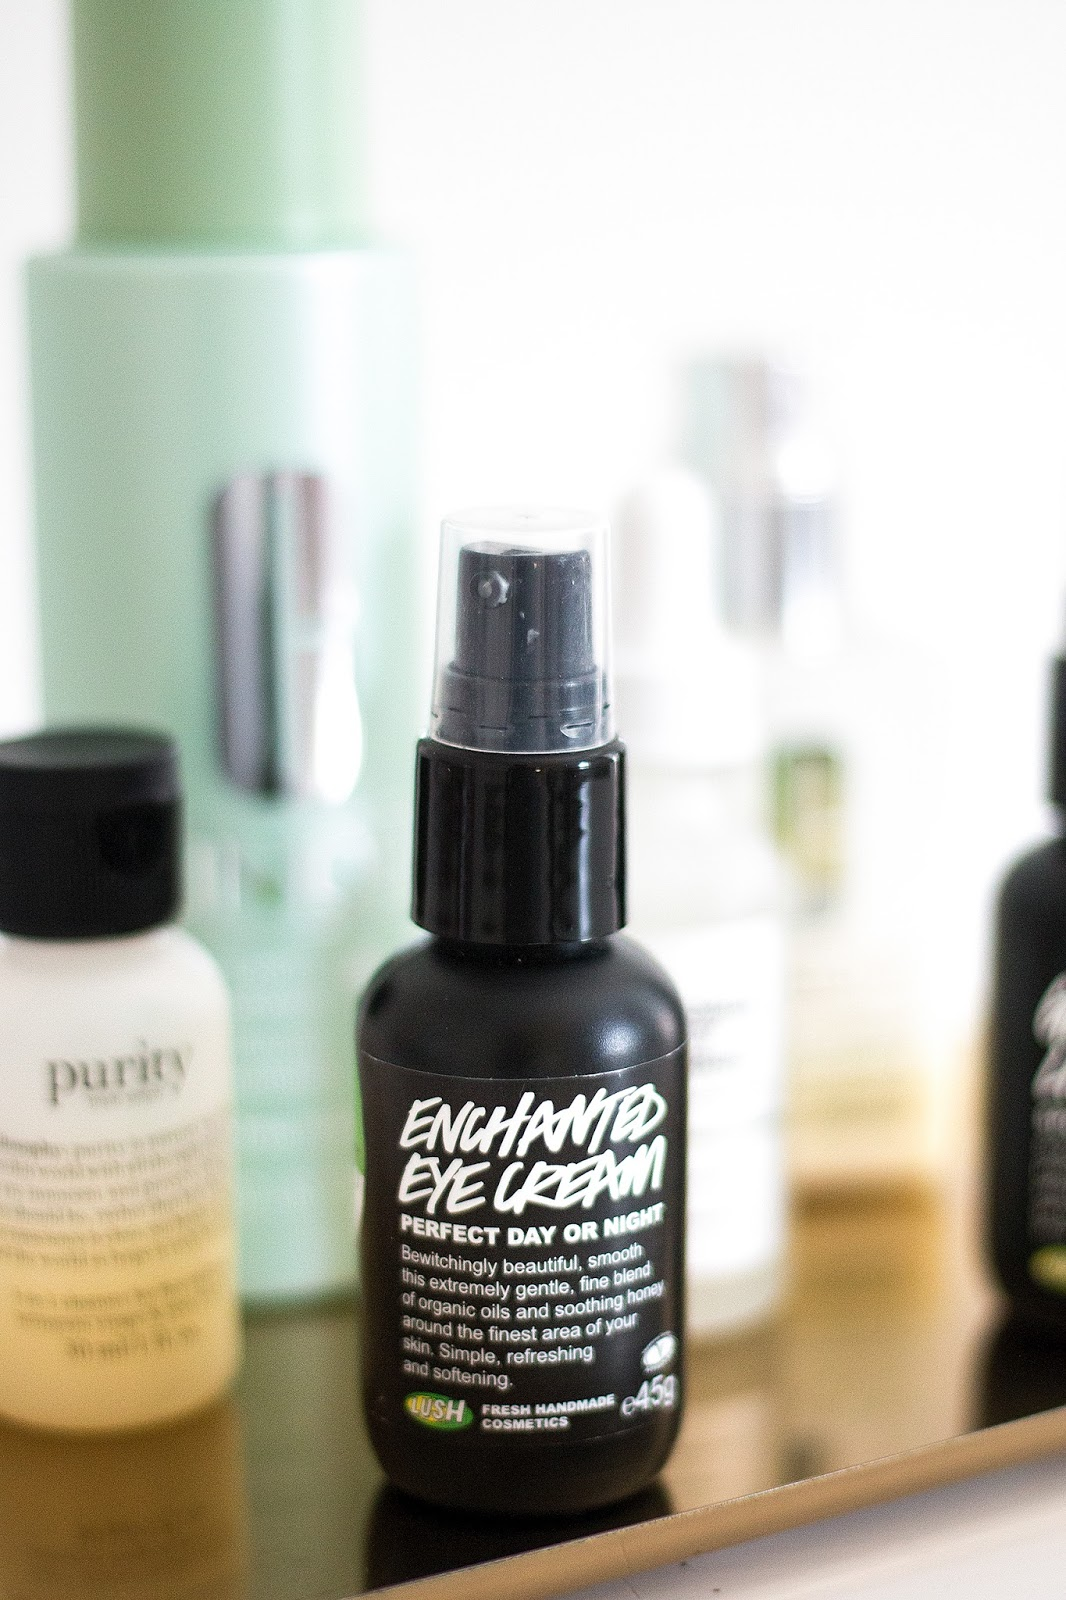 Skincare products | Lush Enchanted Eye cream | Skincare routine for dry skin